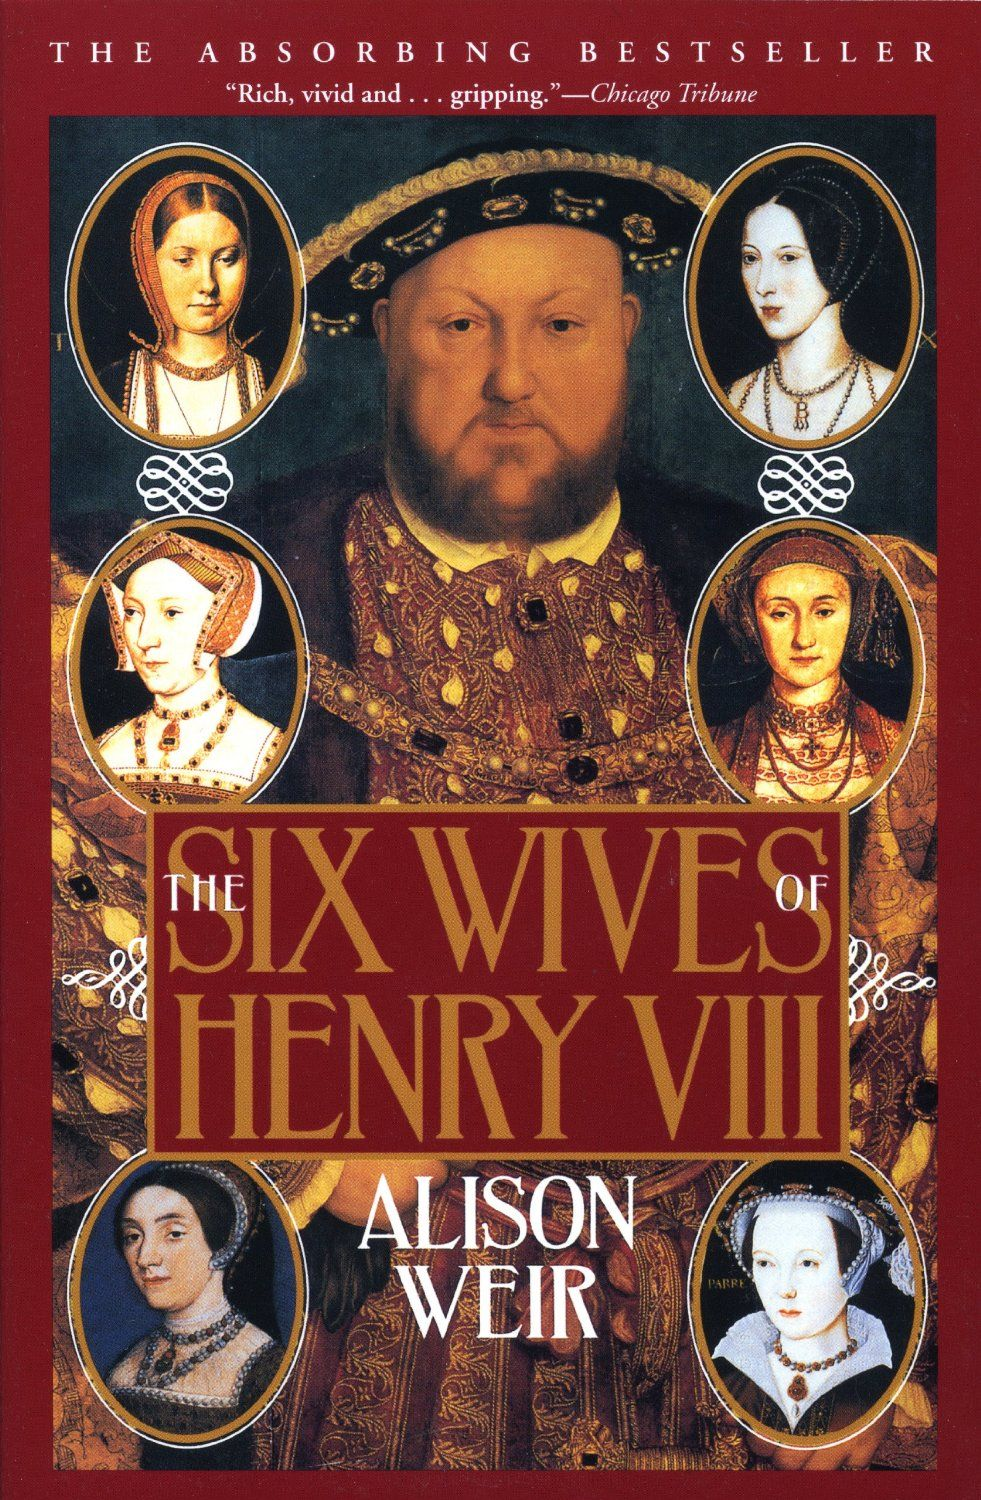 Pin by whitney cameron on books wives of henry viii